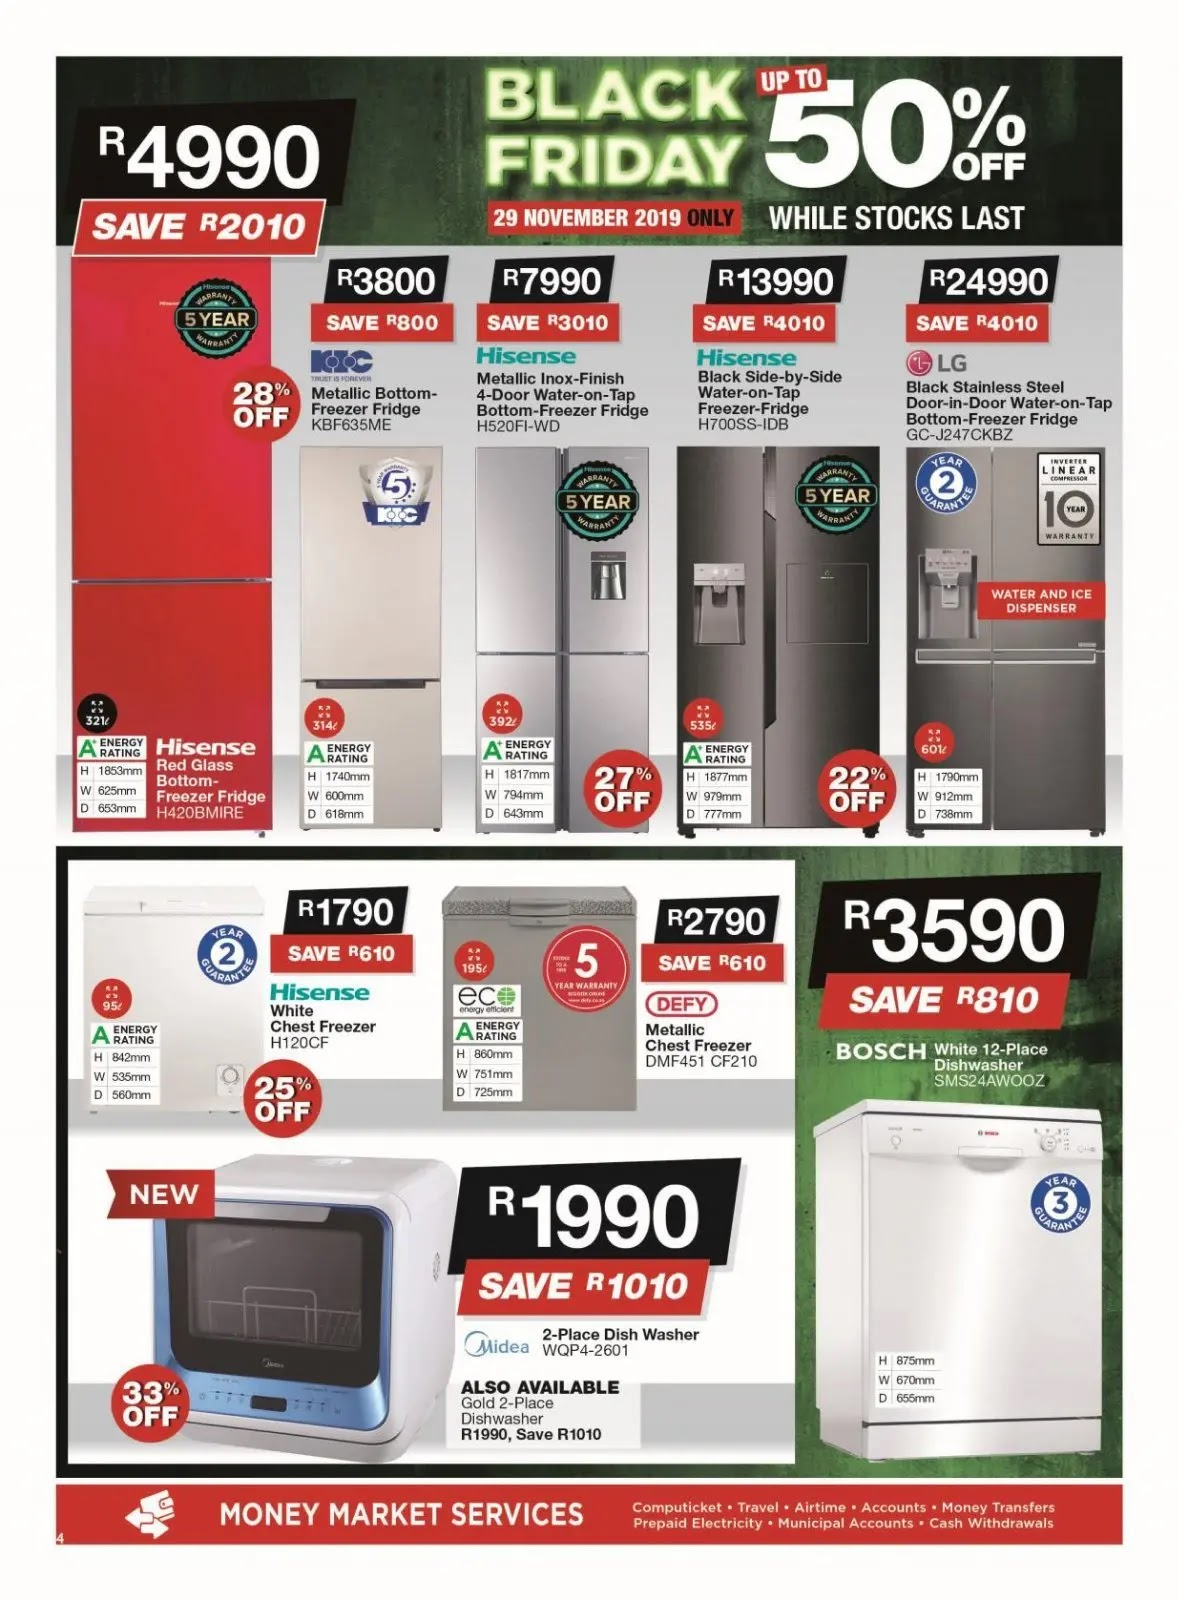 House & Home Black Friday Deals Page 4